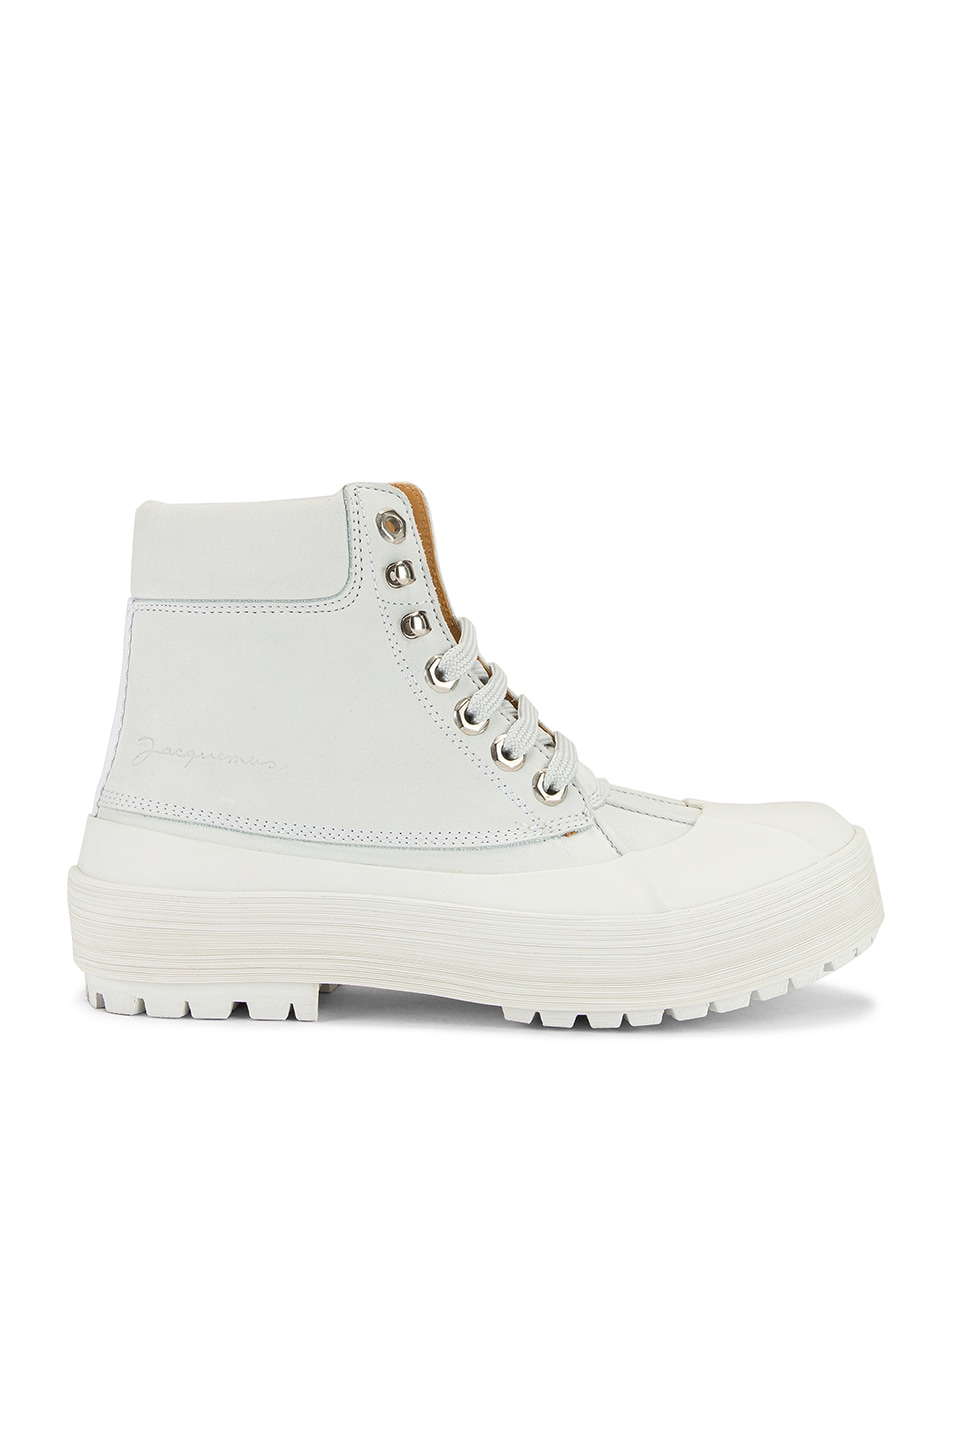 Image 1 of JACQUEMUS High Top Boot in White